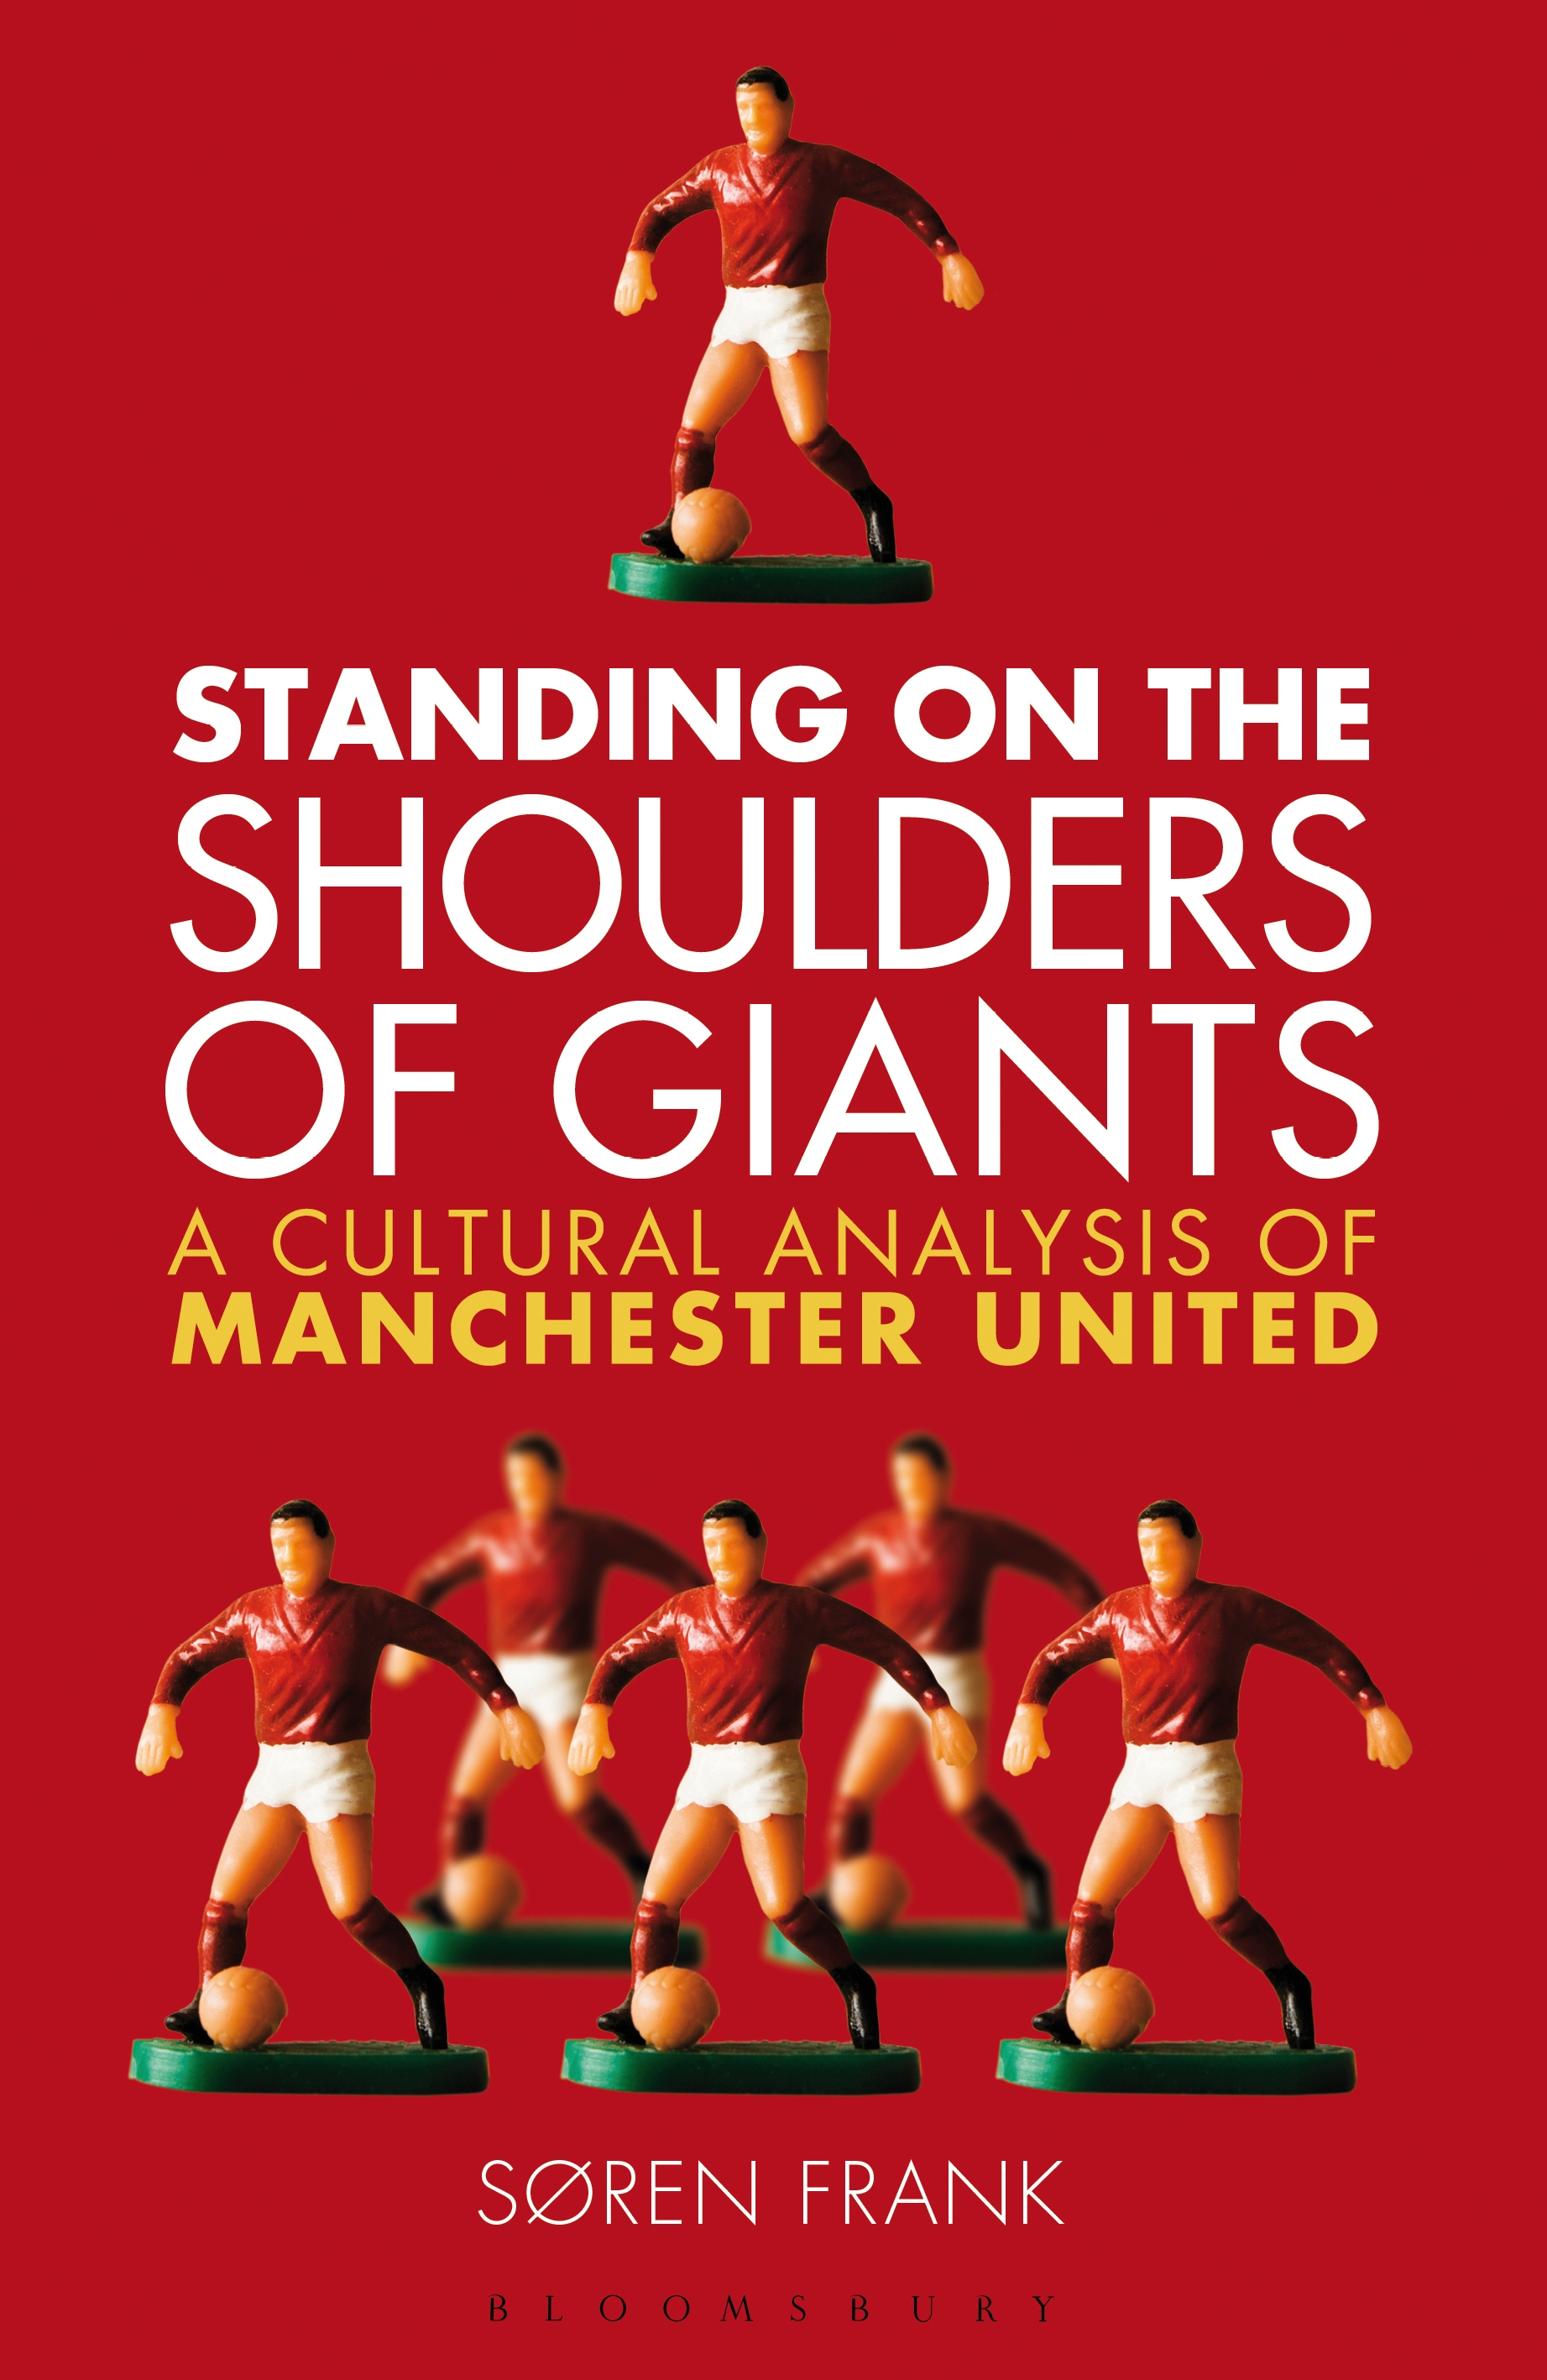 Standing on the Shoulders of Giants A Cultural Analysis of Manchester United